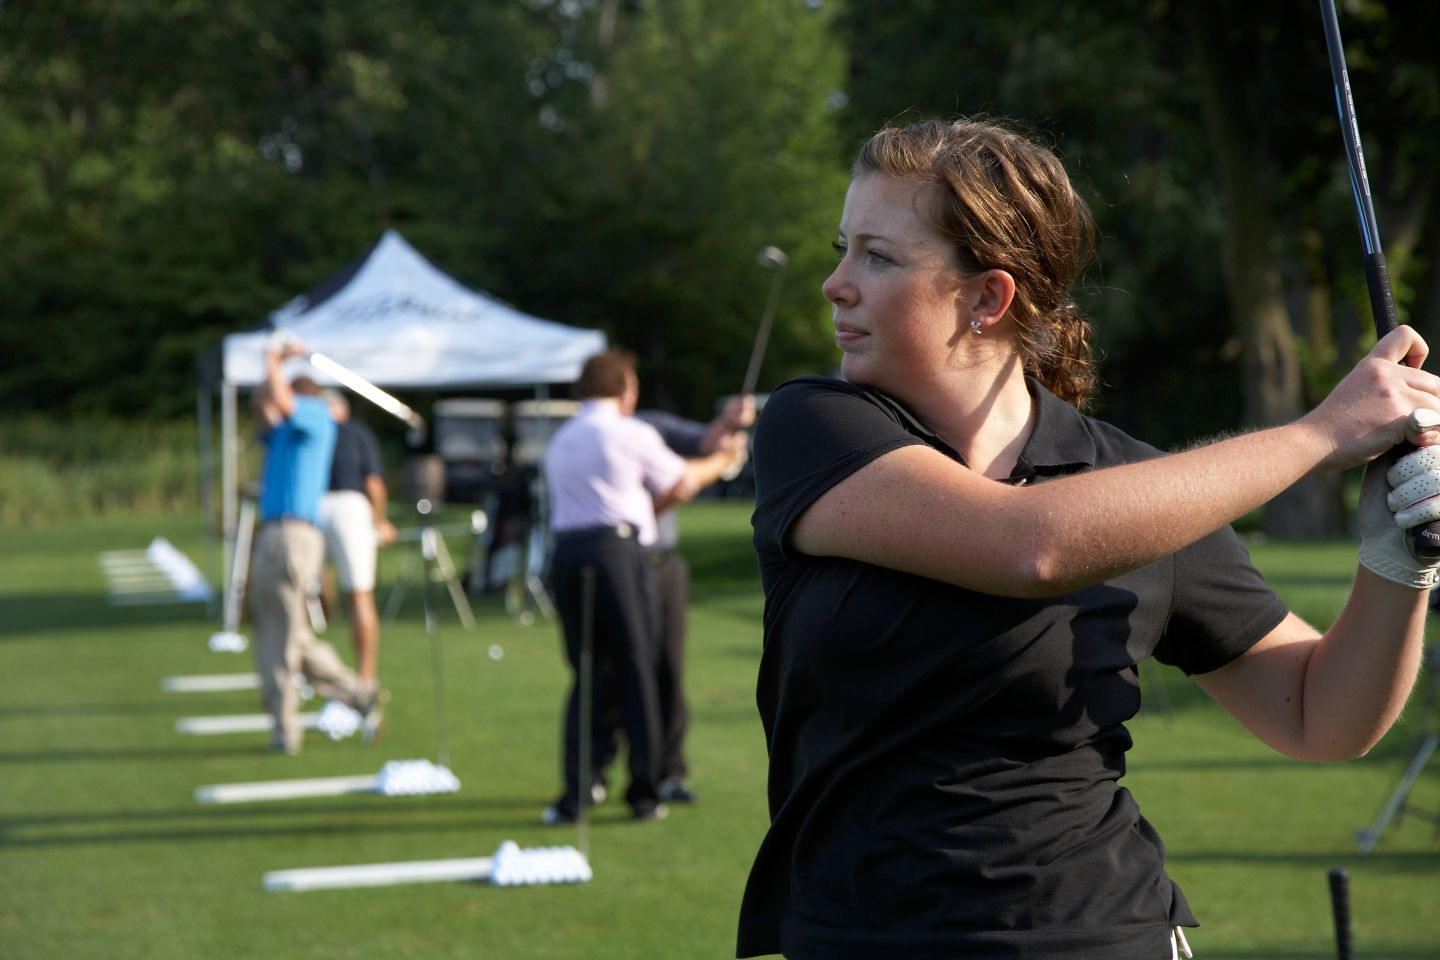 Female golfer at Blackwolf Run practice facility